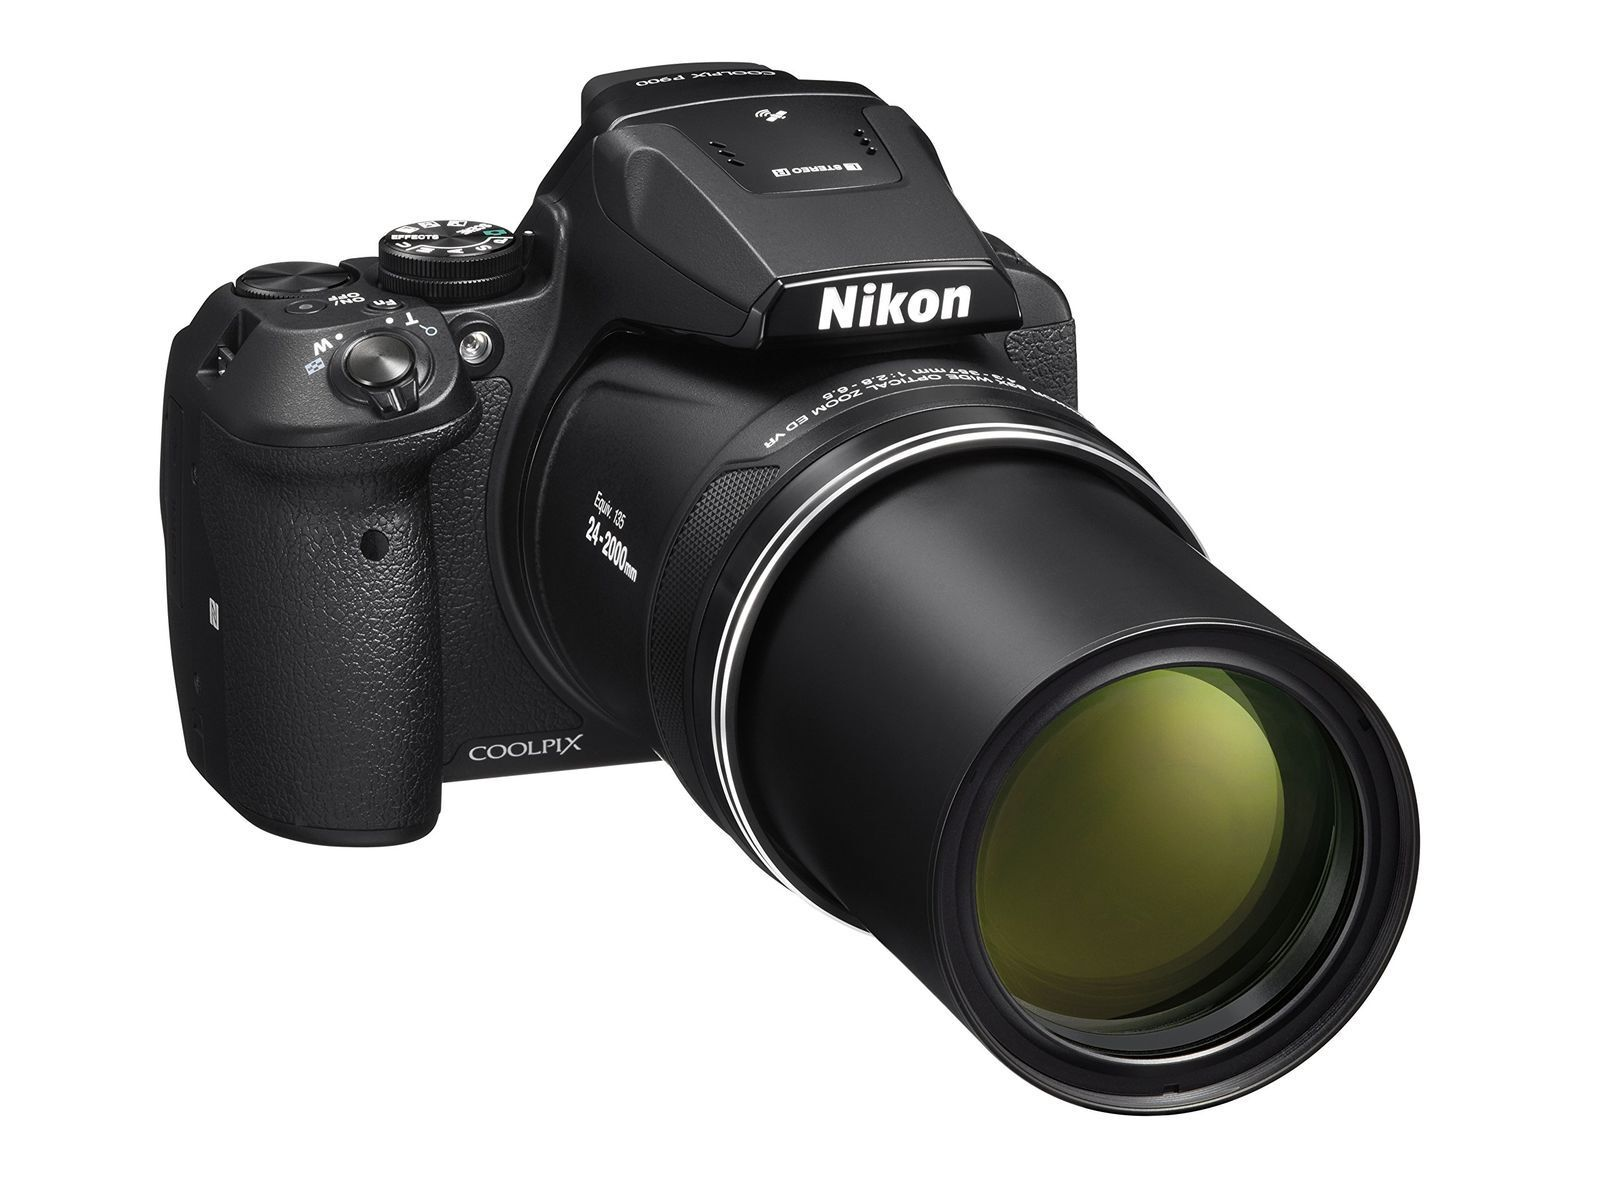 Nikon Coolpix P900 Digital Camera With 83x Optical Zoom & Built-in Wi-fi(black) 11